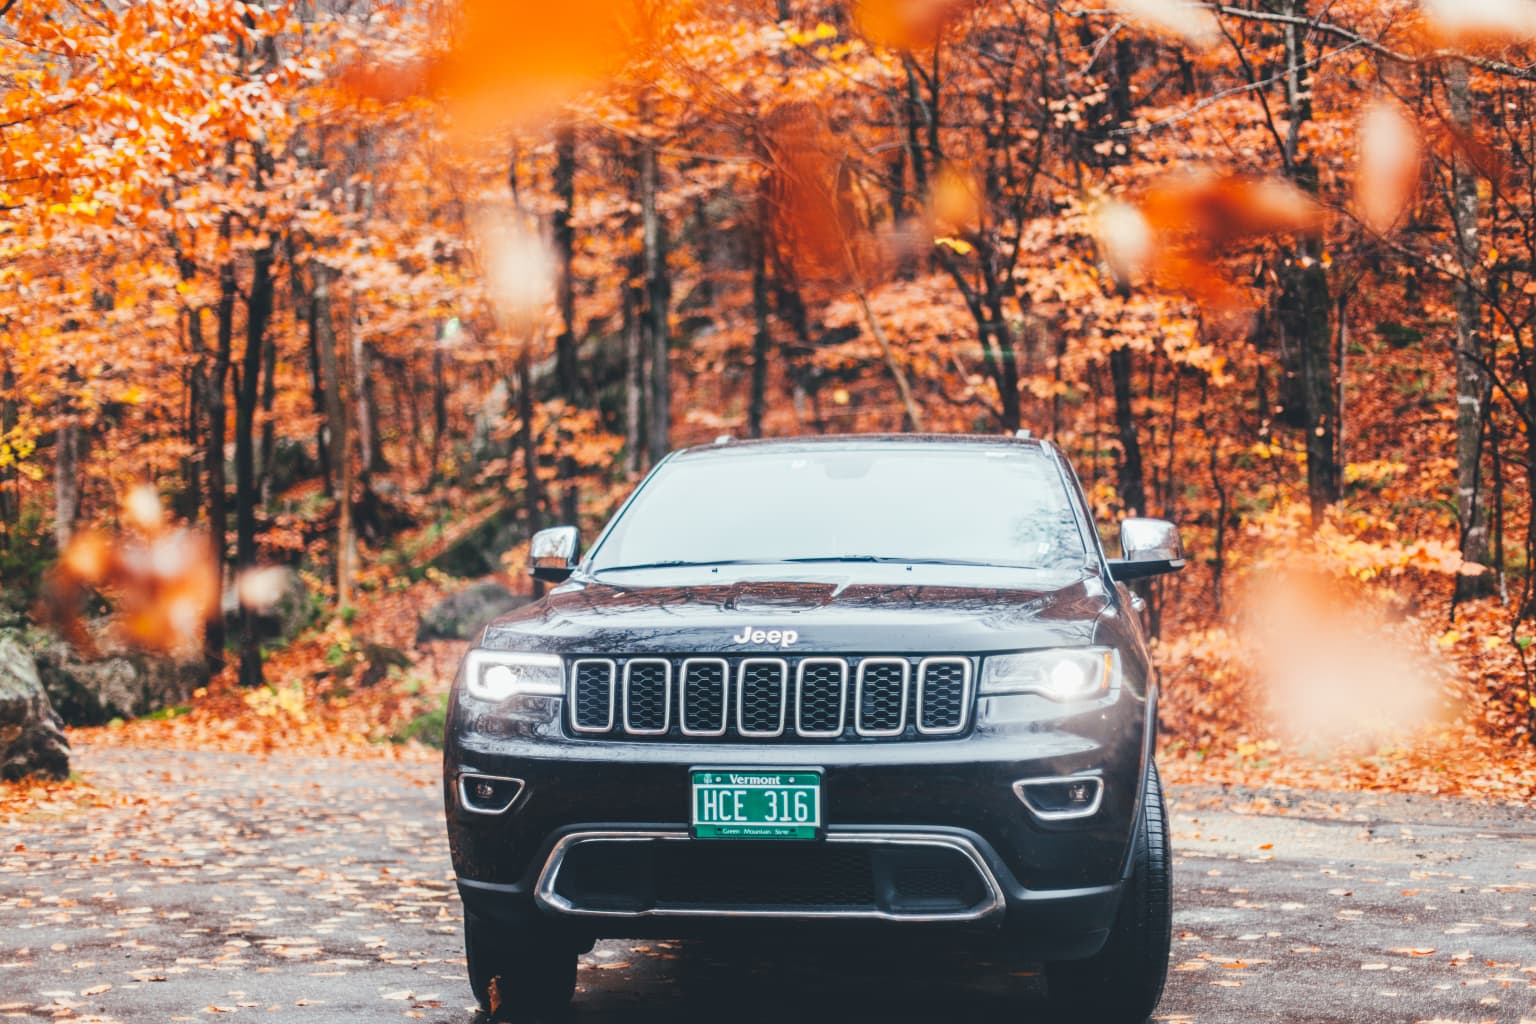 New England + Jeep